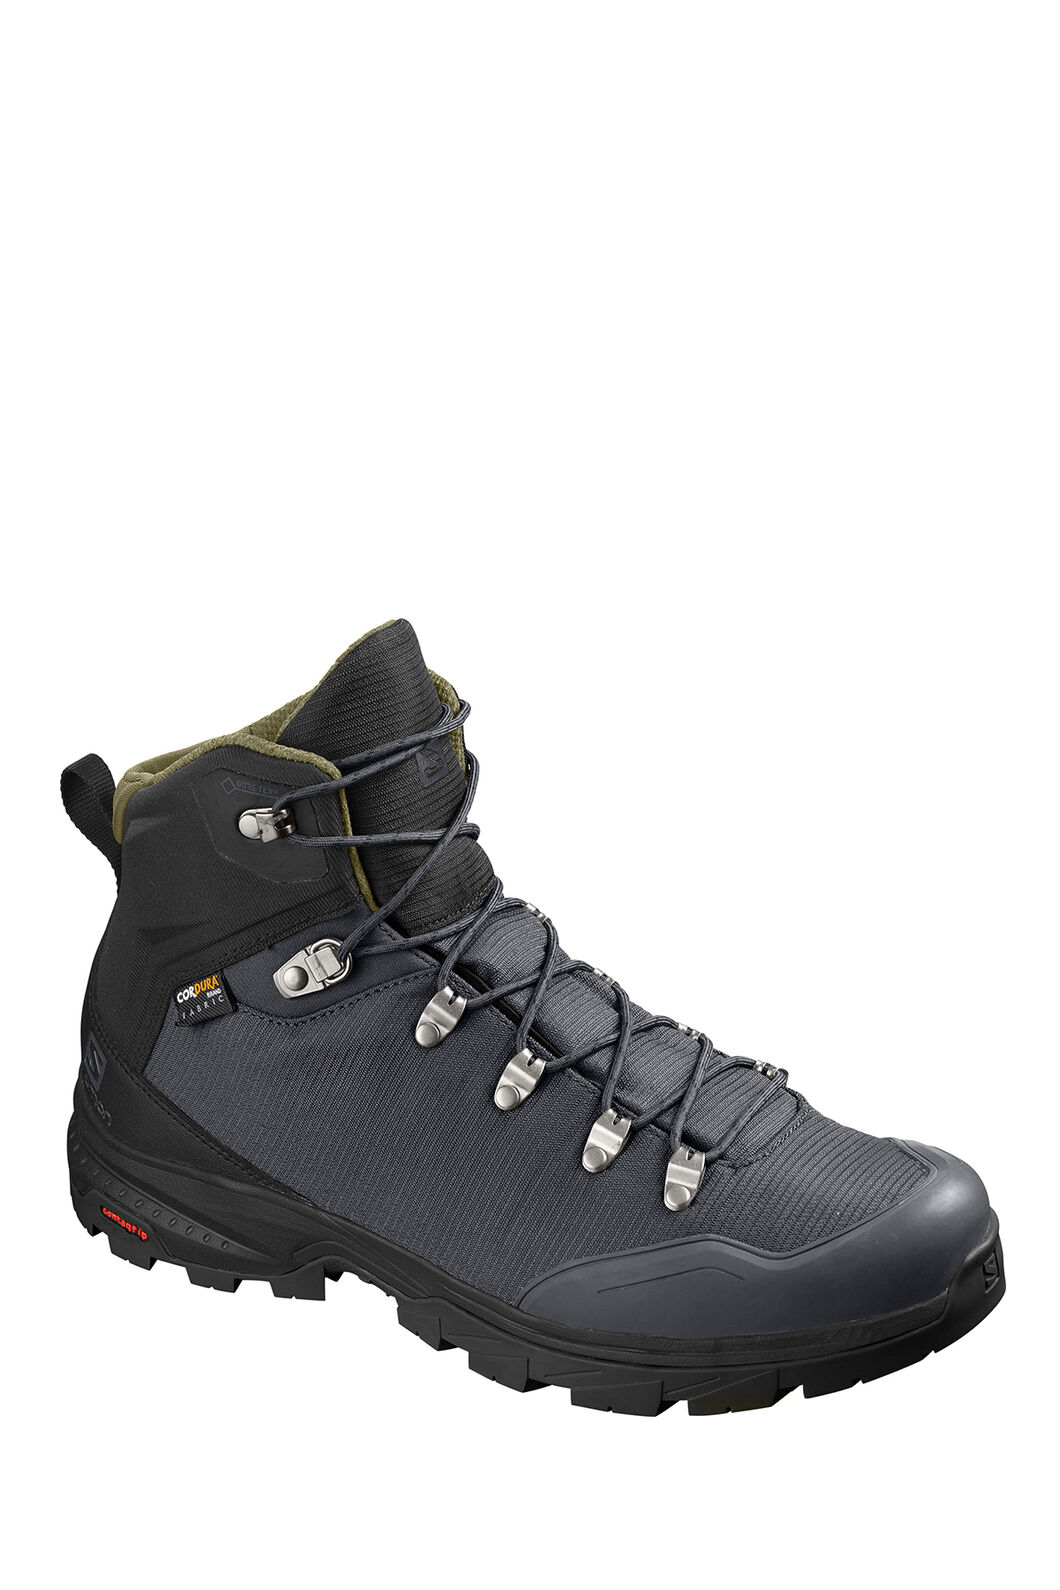 Salomon Outback 500 GTX WP Hiking Boots — Men's, Ebony/Black/Grape Leaf, hi-res